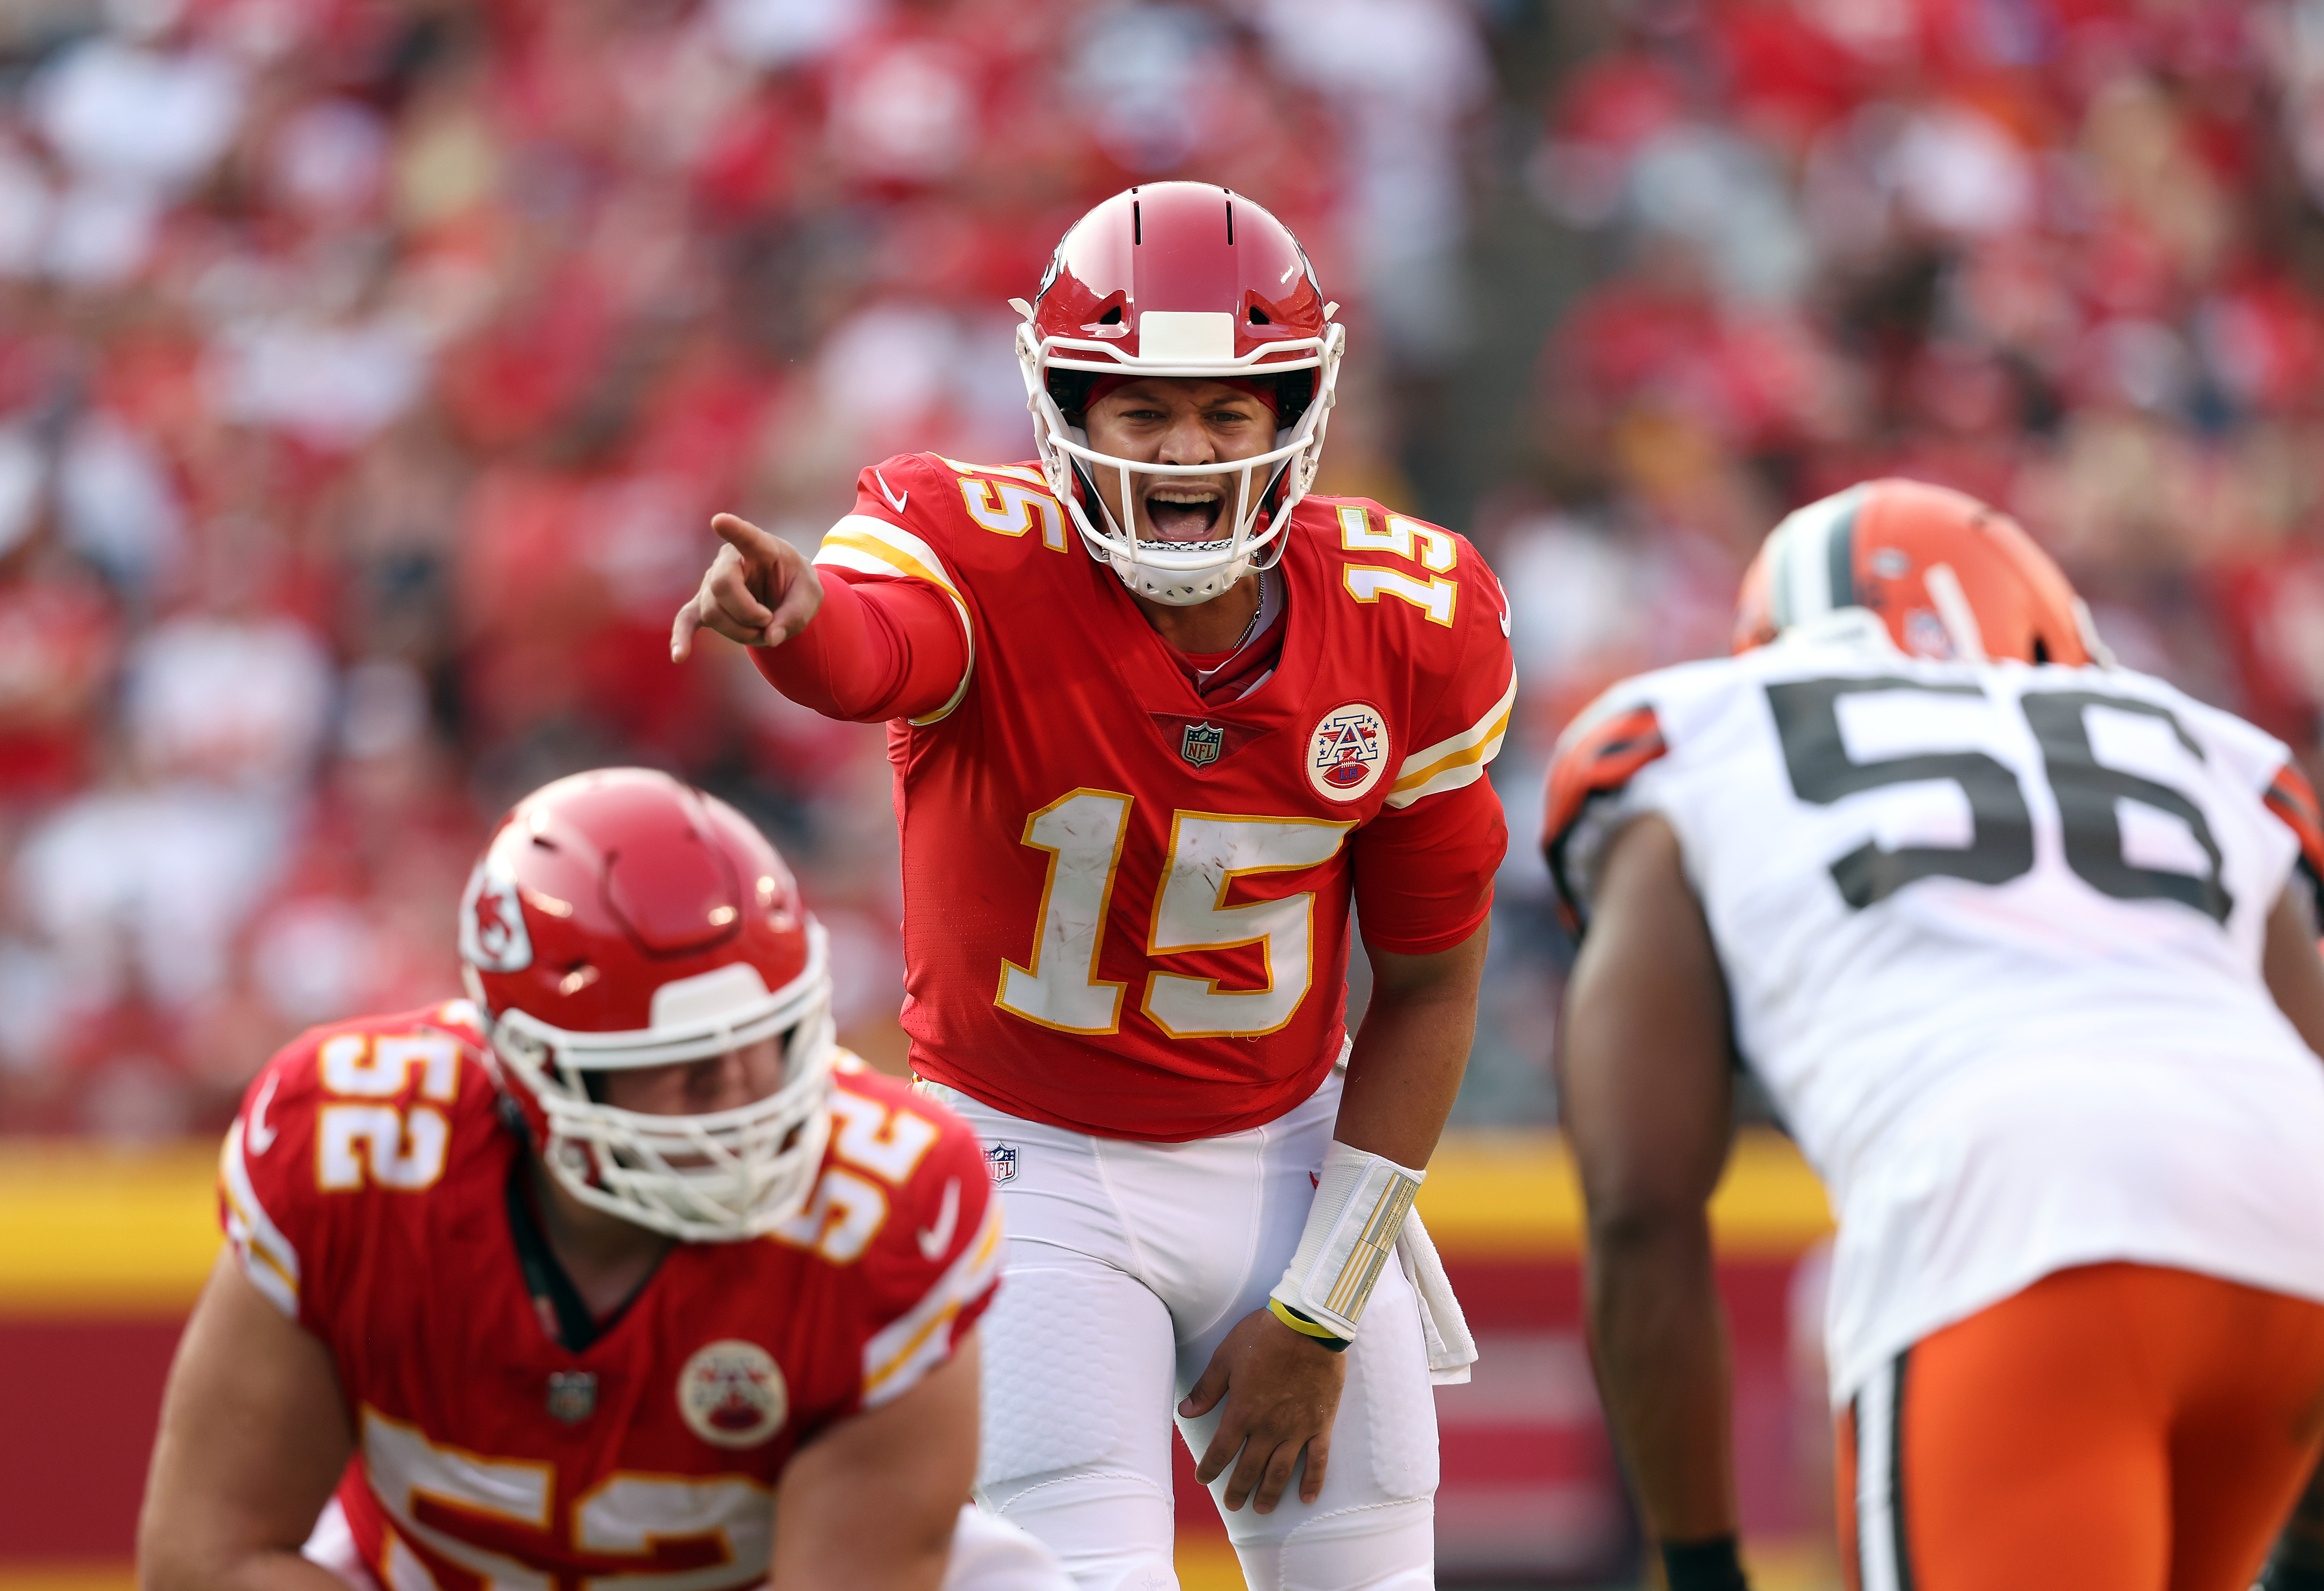 Quarterback Patrick Mahomes #15 of the Kansas City Chiefs in action during the game against the Cleveland Browns at Arrowhead Stadium on September 12, 2021 in Kansas City, Missouri.